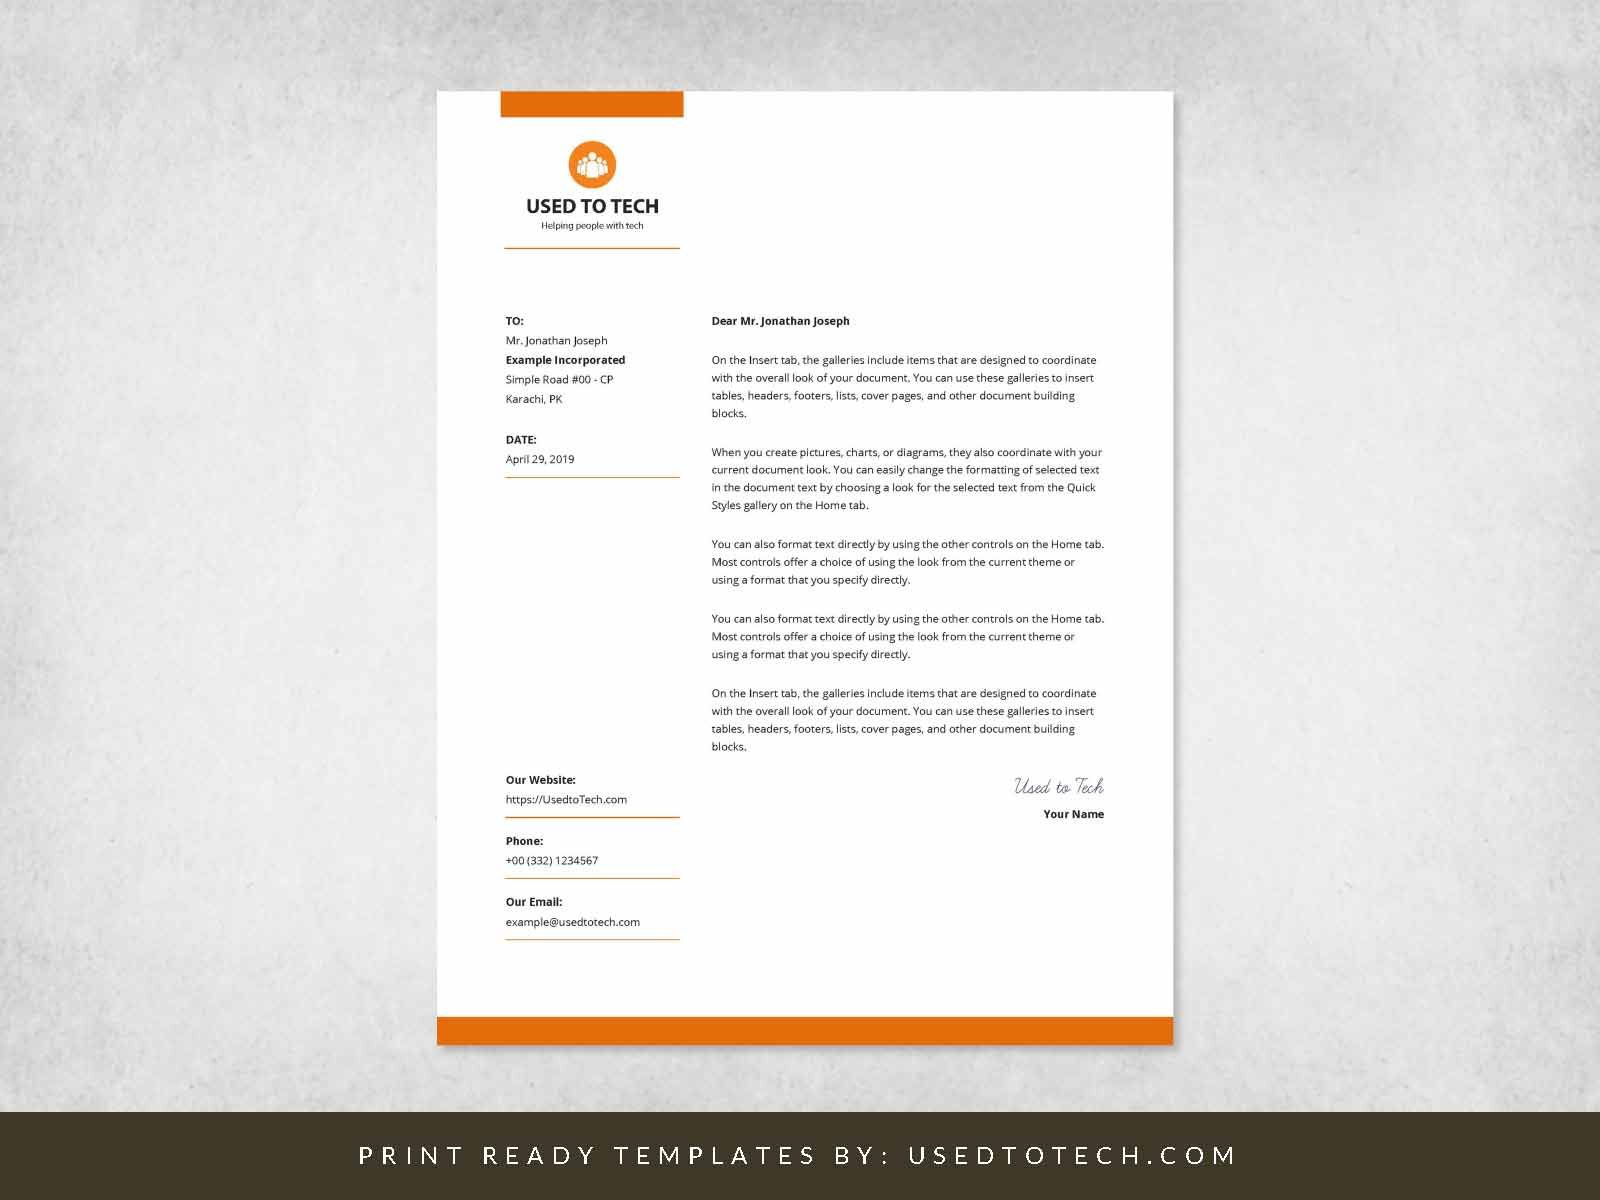 001 Surprising Letterhead Sample In Word Format Free Download Example  Design Template PsdFull